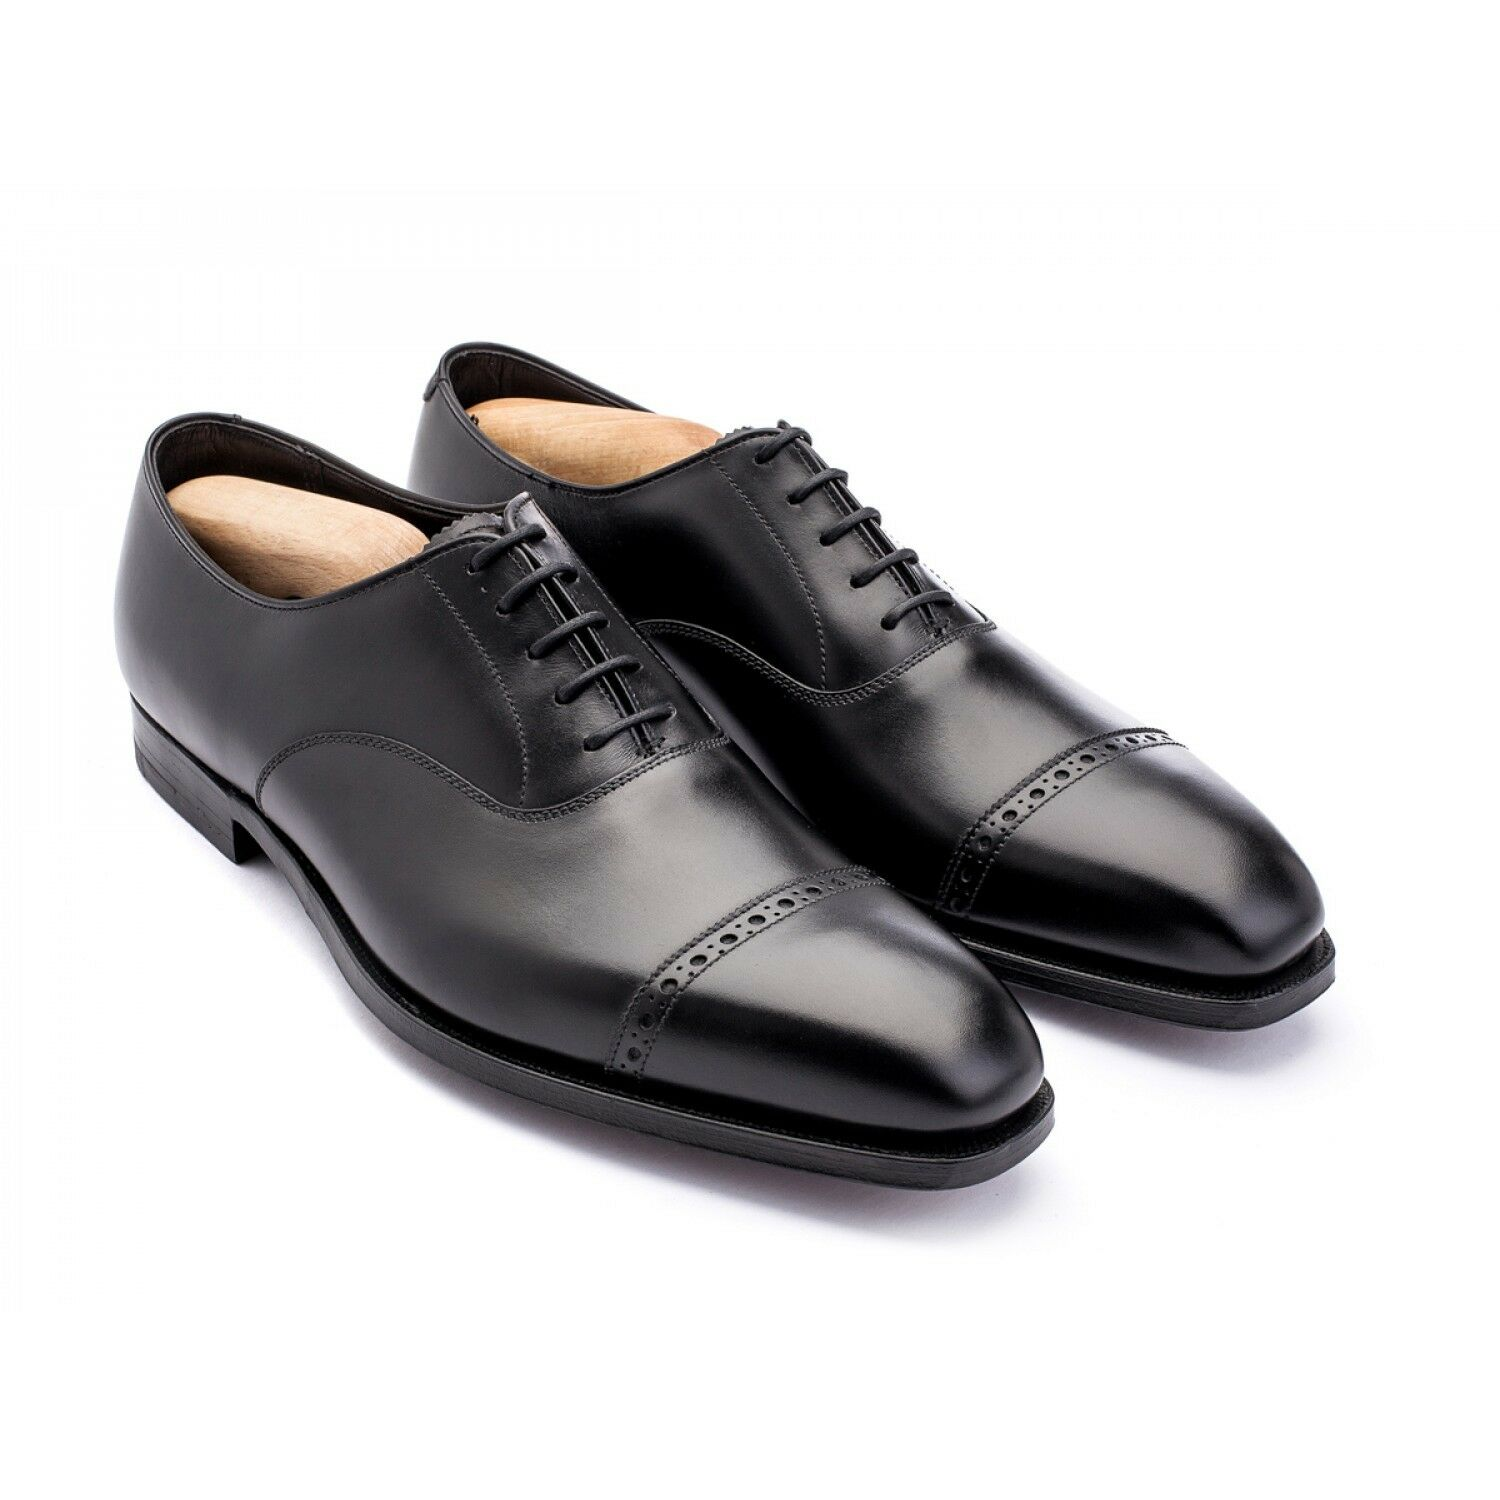 Mr/Ms G.J. Cleverley Charles Black Calf durability International choice Known for its beautiful quality